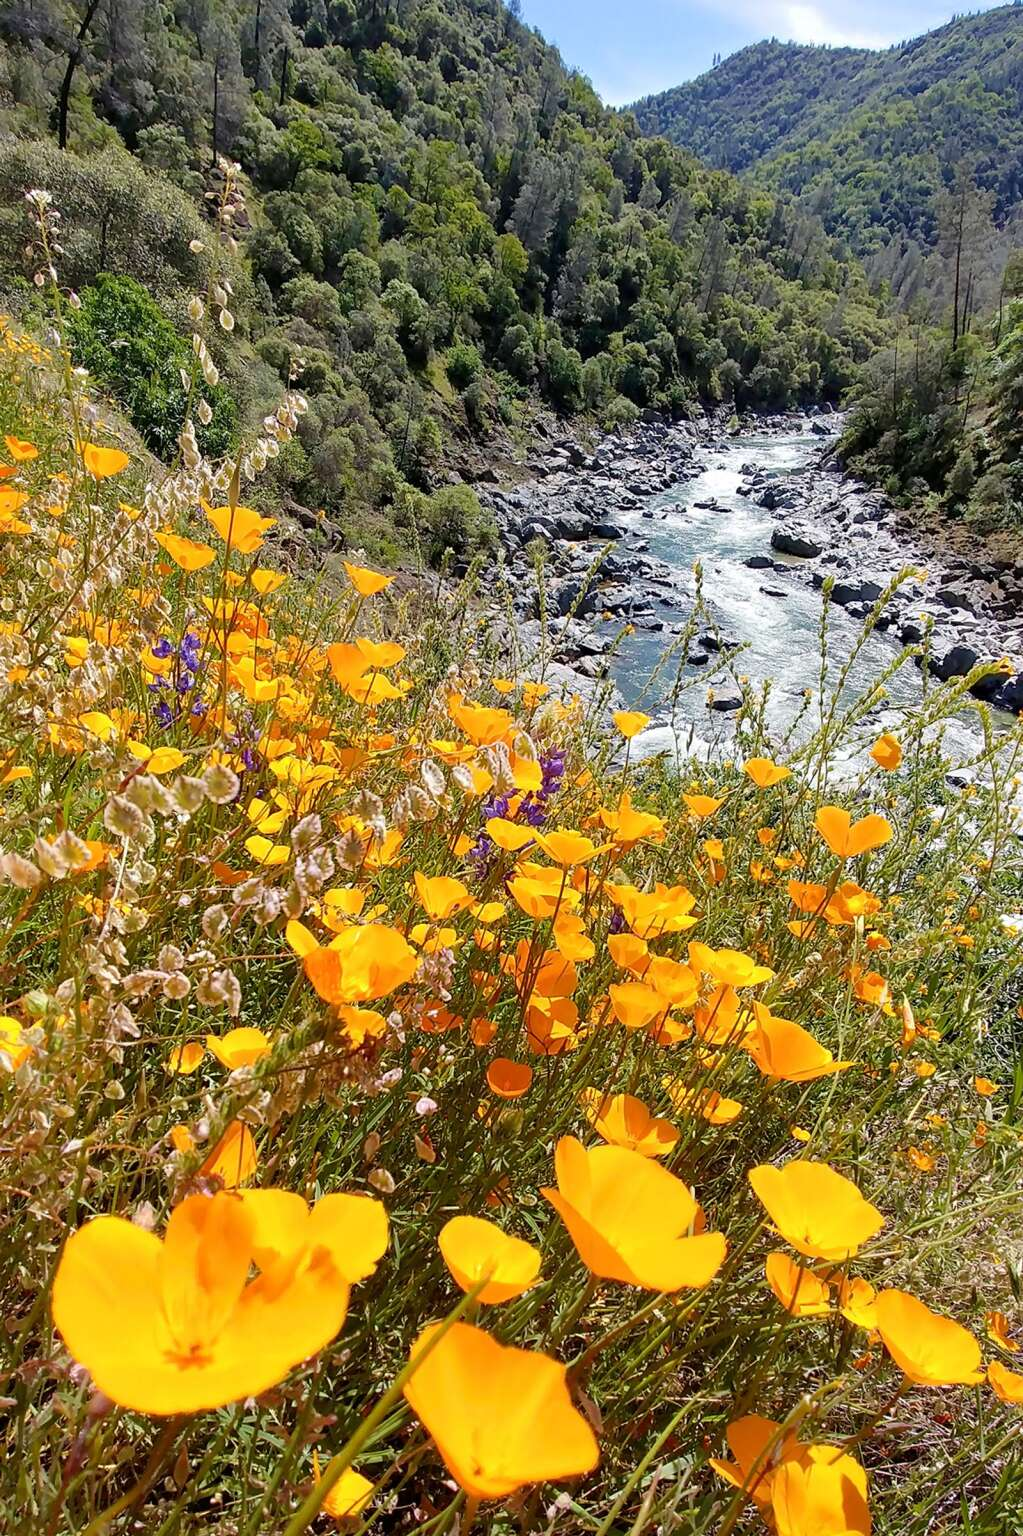 Wildflowers in full display along the Buttermilk Bend Trail the South Yuba River State Park. Though parking lots at most river access points were closed in April, the parks and trails remained open, though proper social distancing and the wearing of masks on single track trails is encouraged. | Photo: Elias Funez